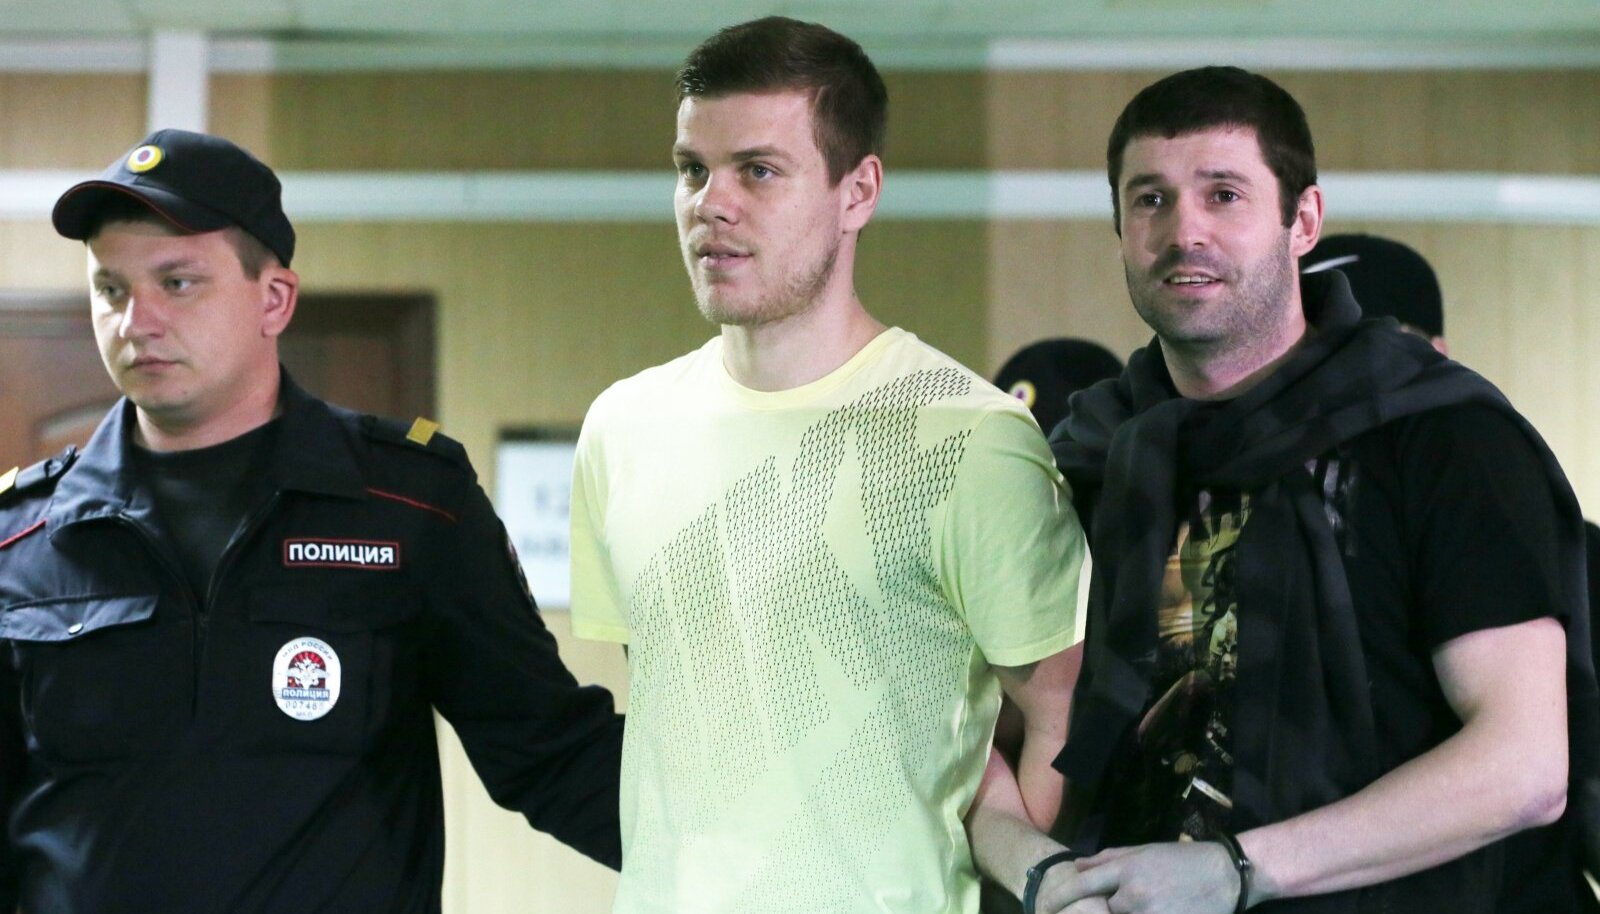 Moscow court hearing into hooliganism case against footballers Kokorin and Mamaev